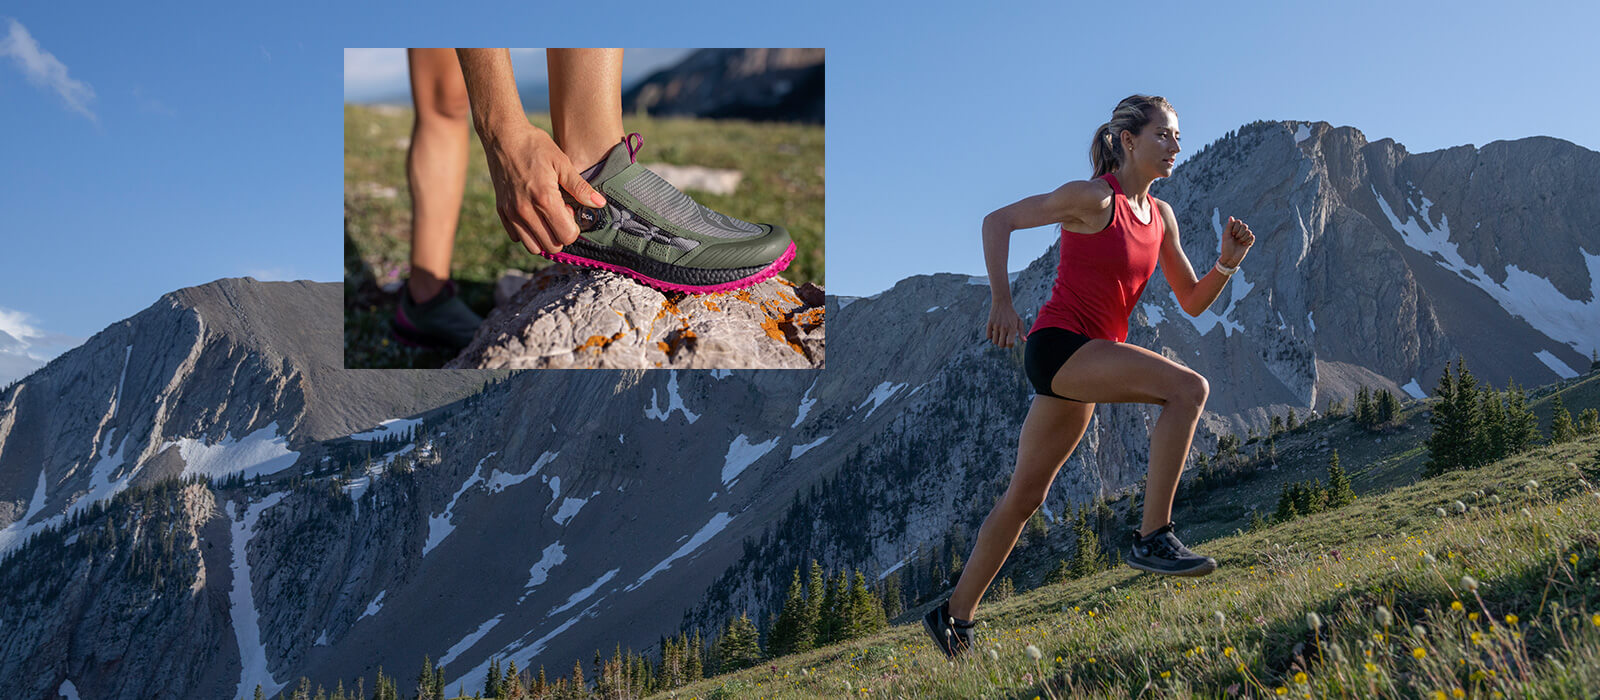 Runner ascends a steep grassy mountain wearing Switchback 2s.